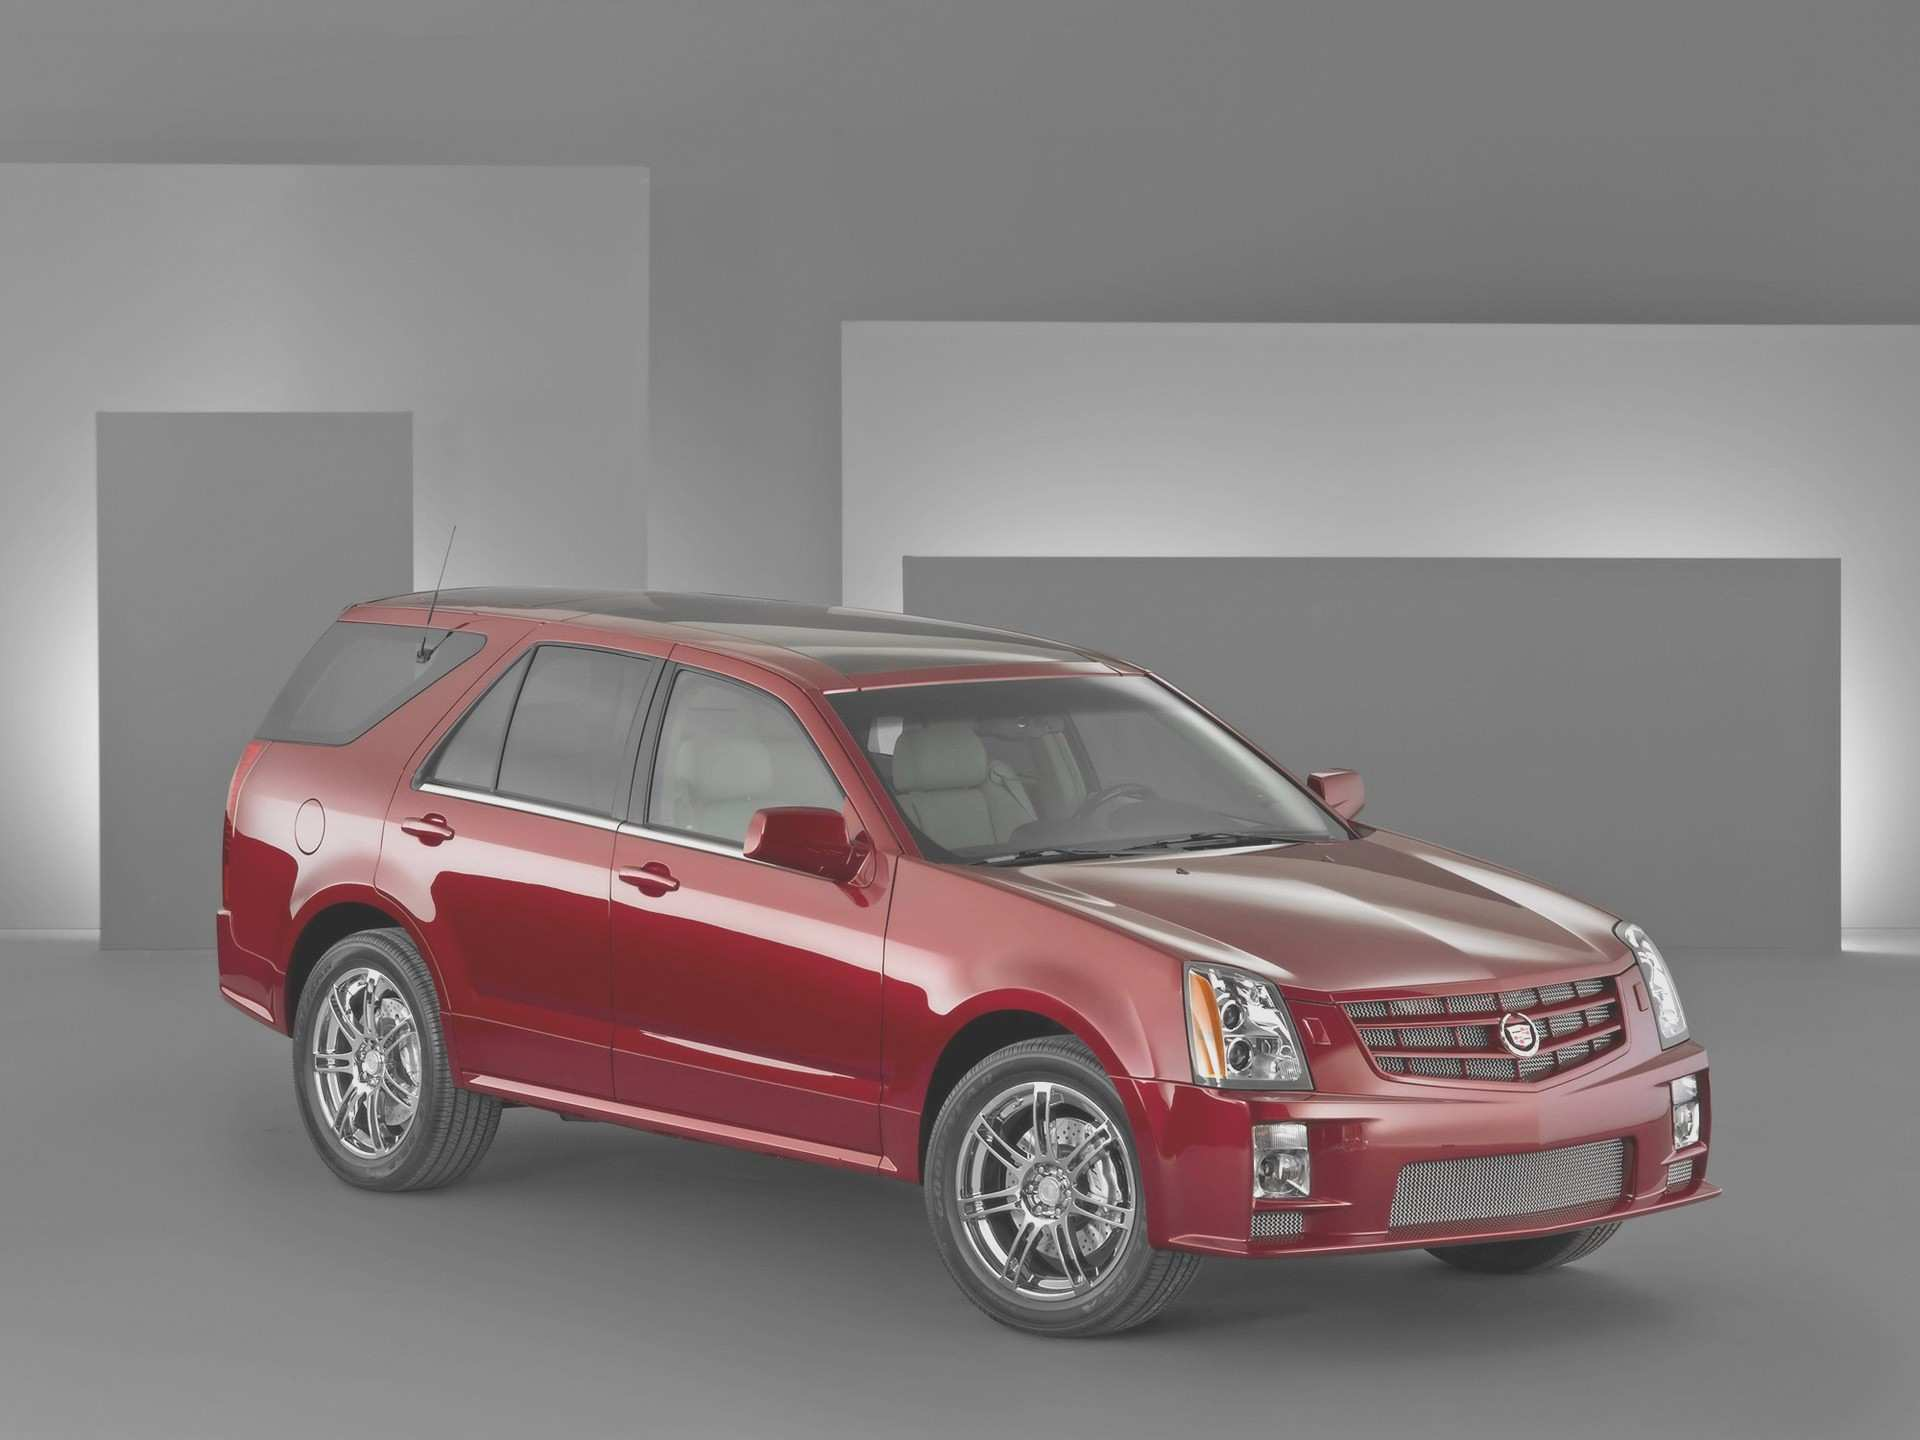 38 All New 2020 Cadillac SRX Images